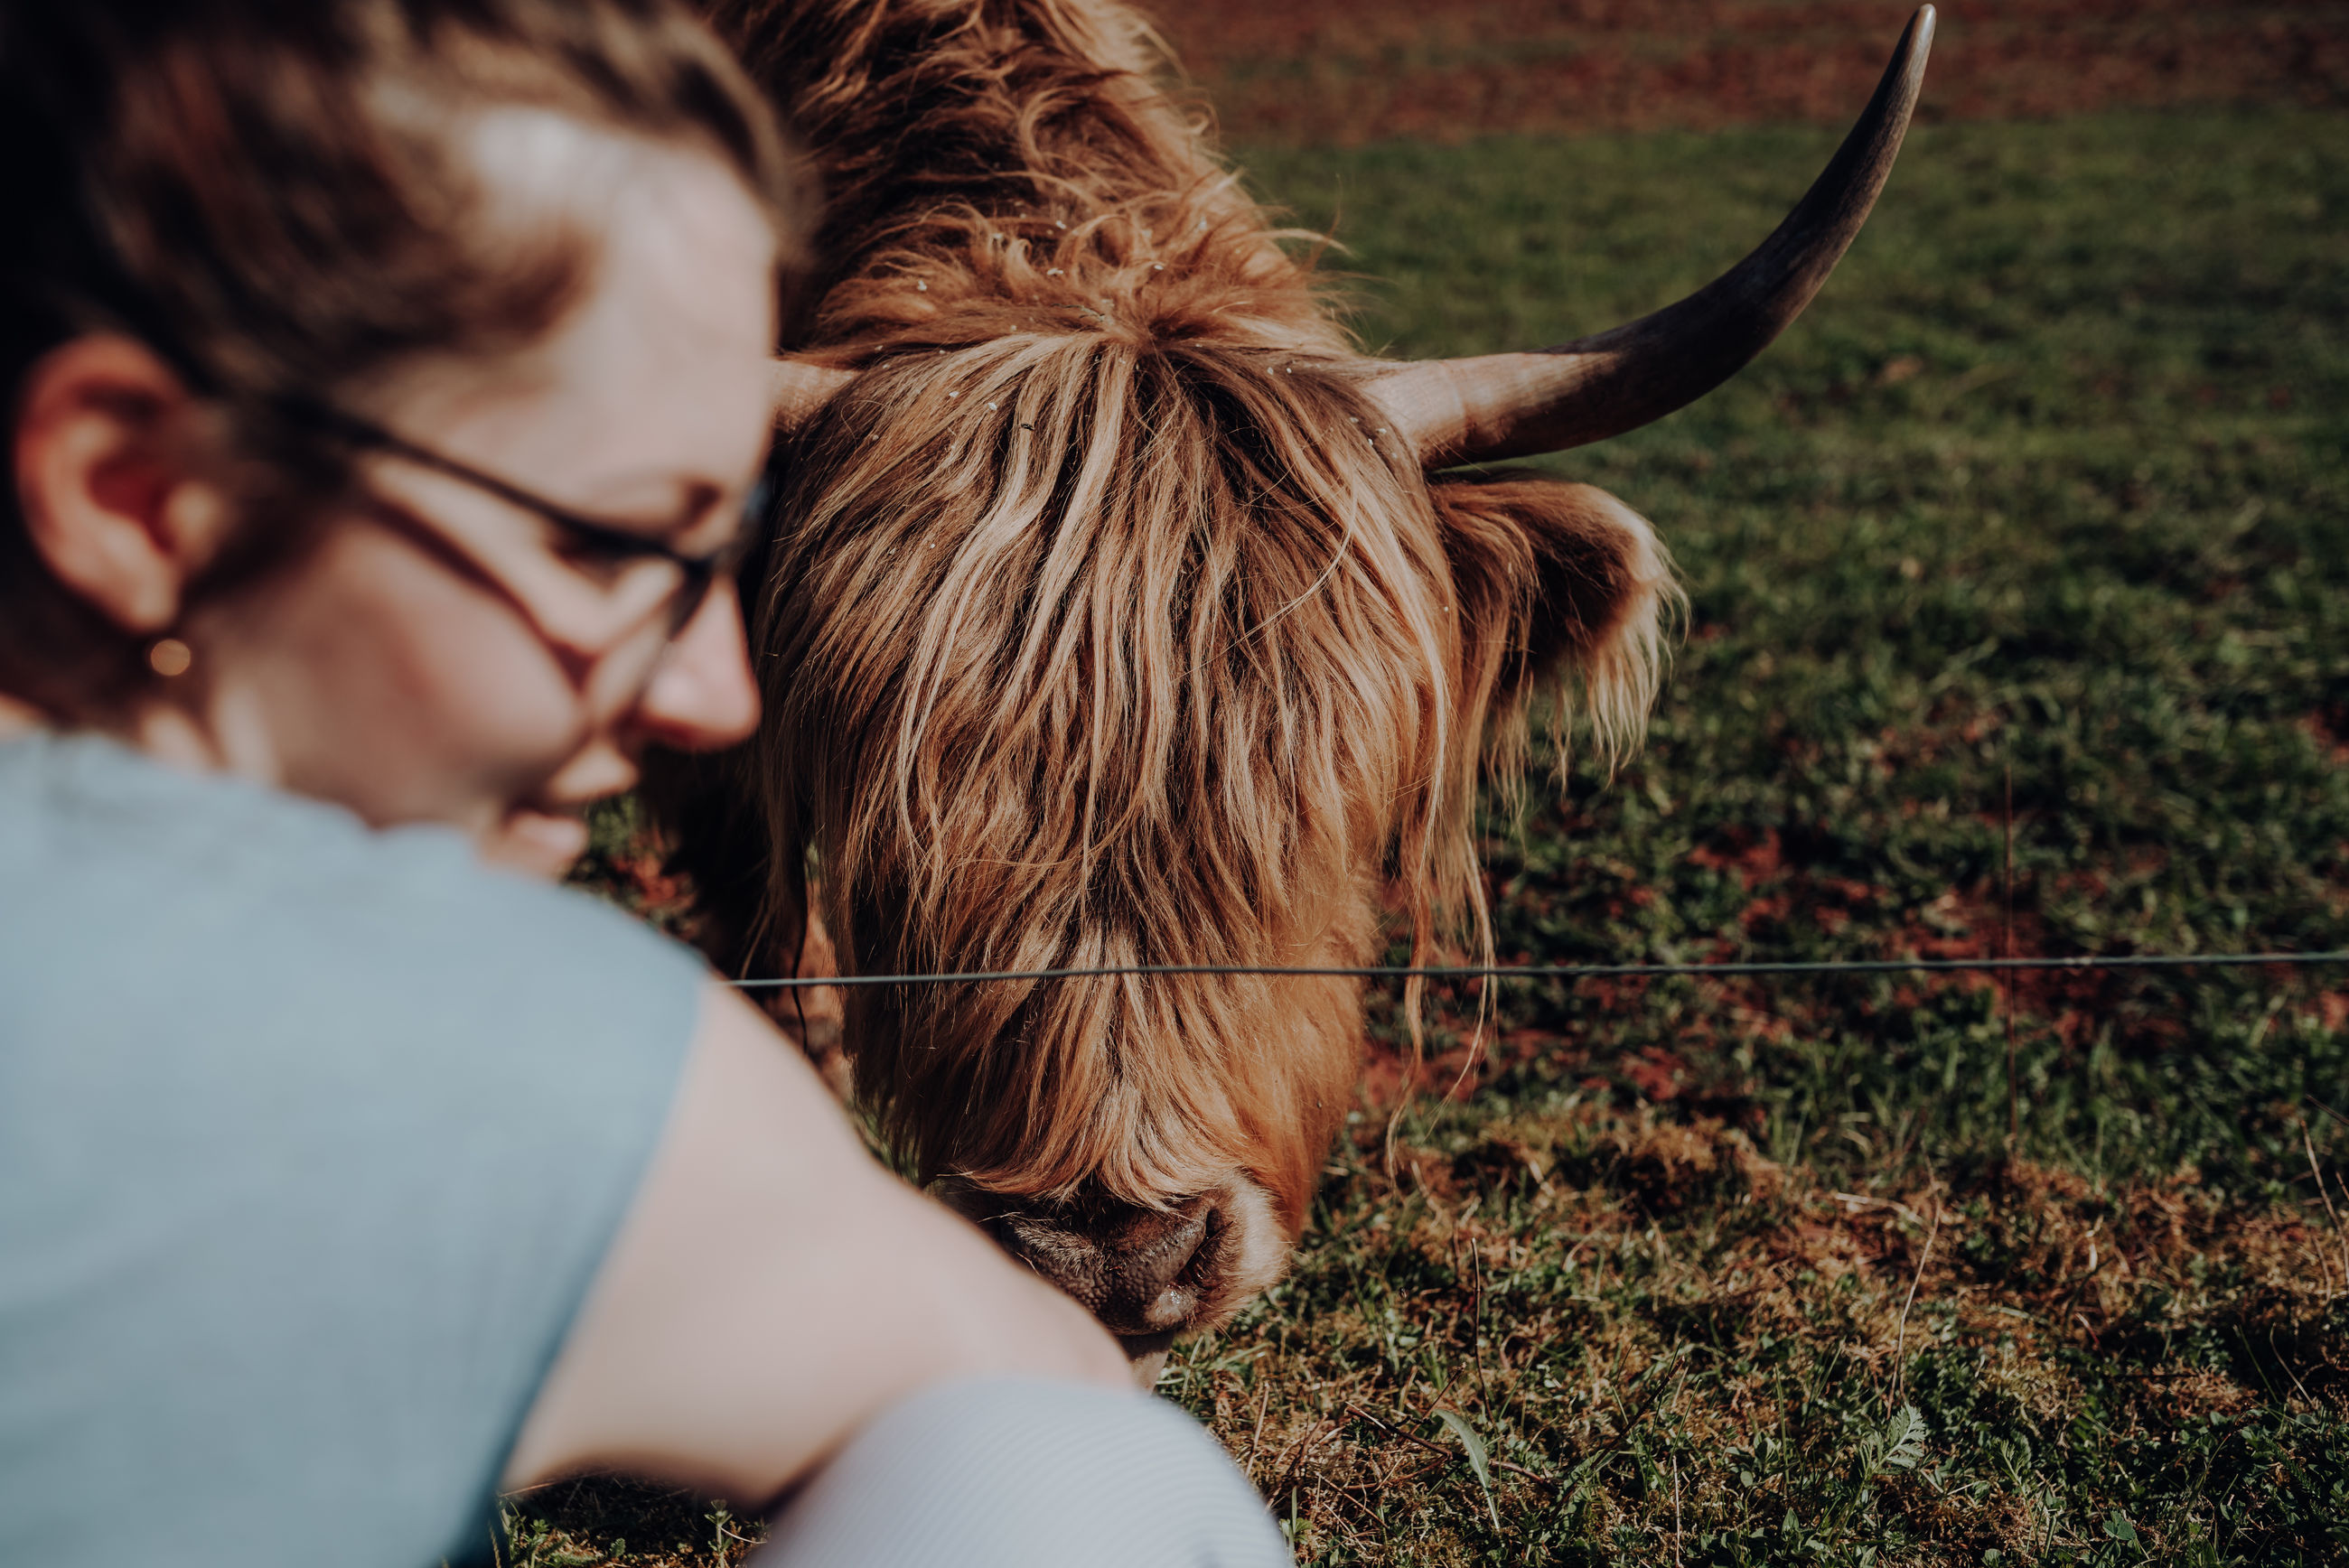 Woman by cow on field